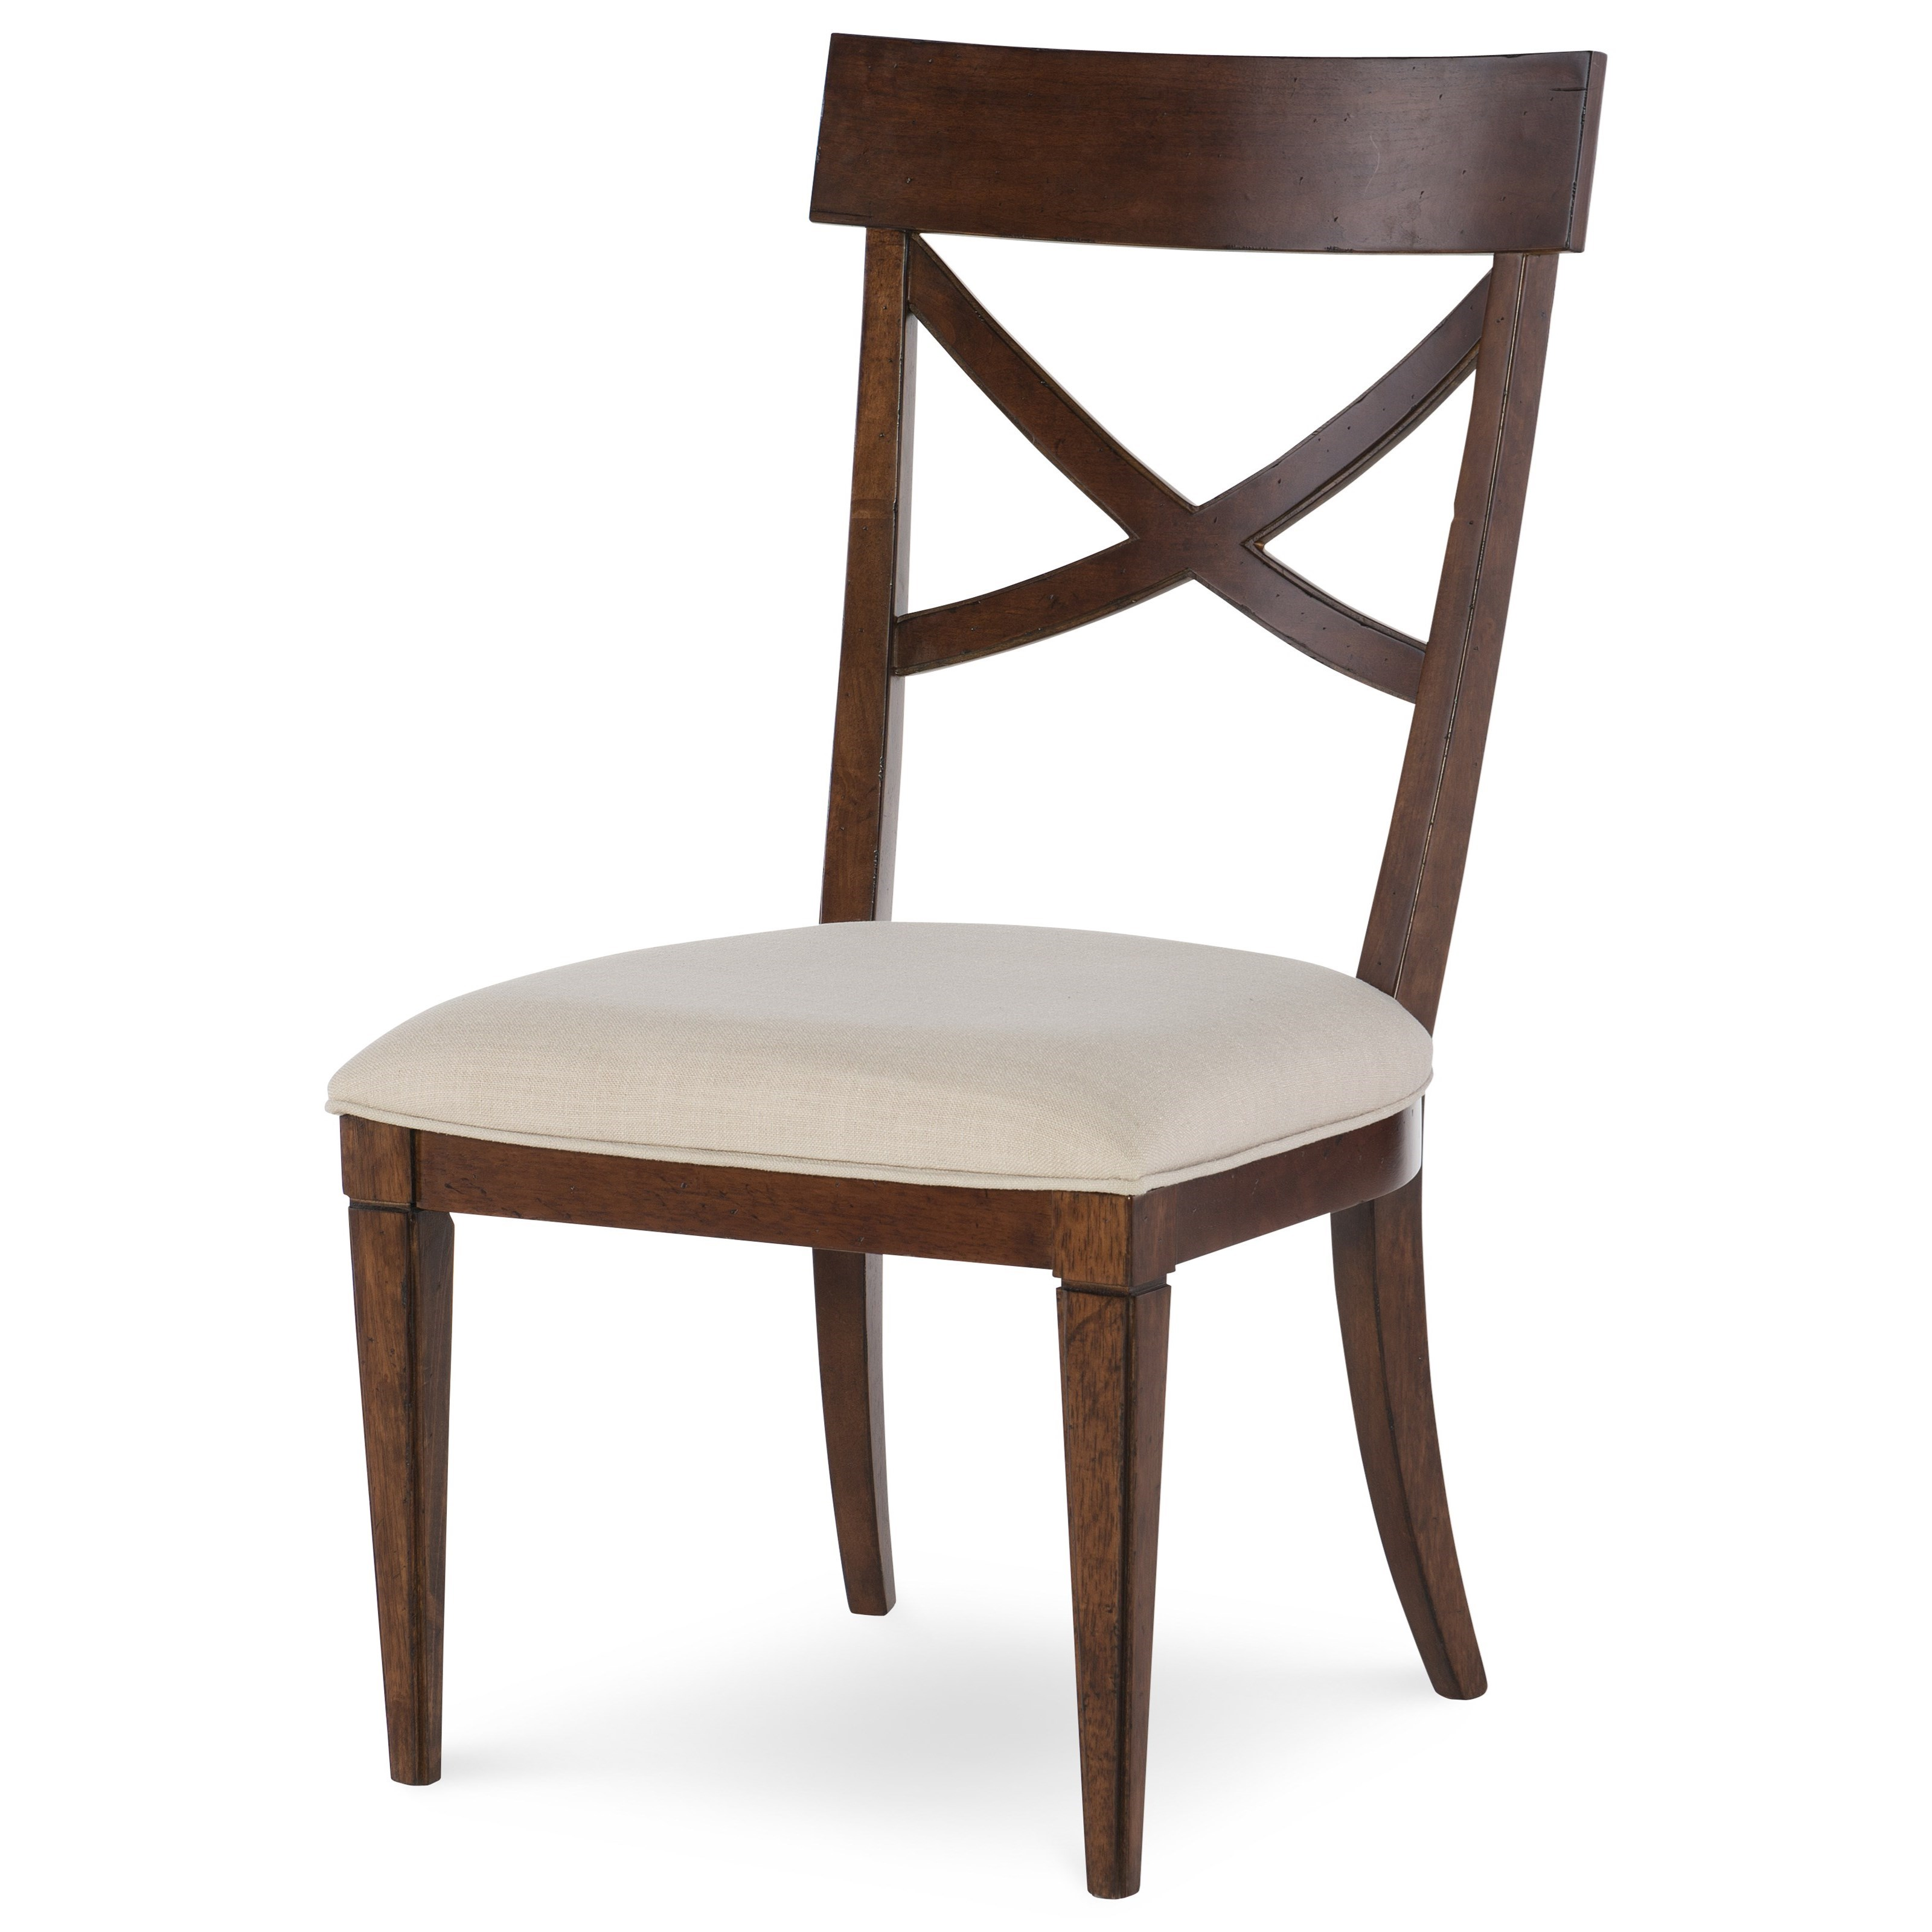 Rachael Ray Home by Legacy Classic Upstate X-Back Side Chair - Item Number: 6040-240 KD